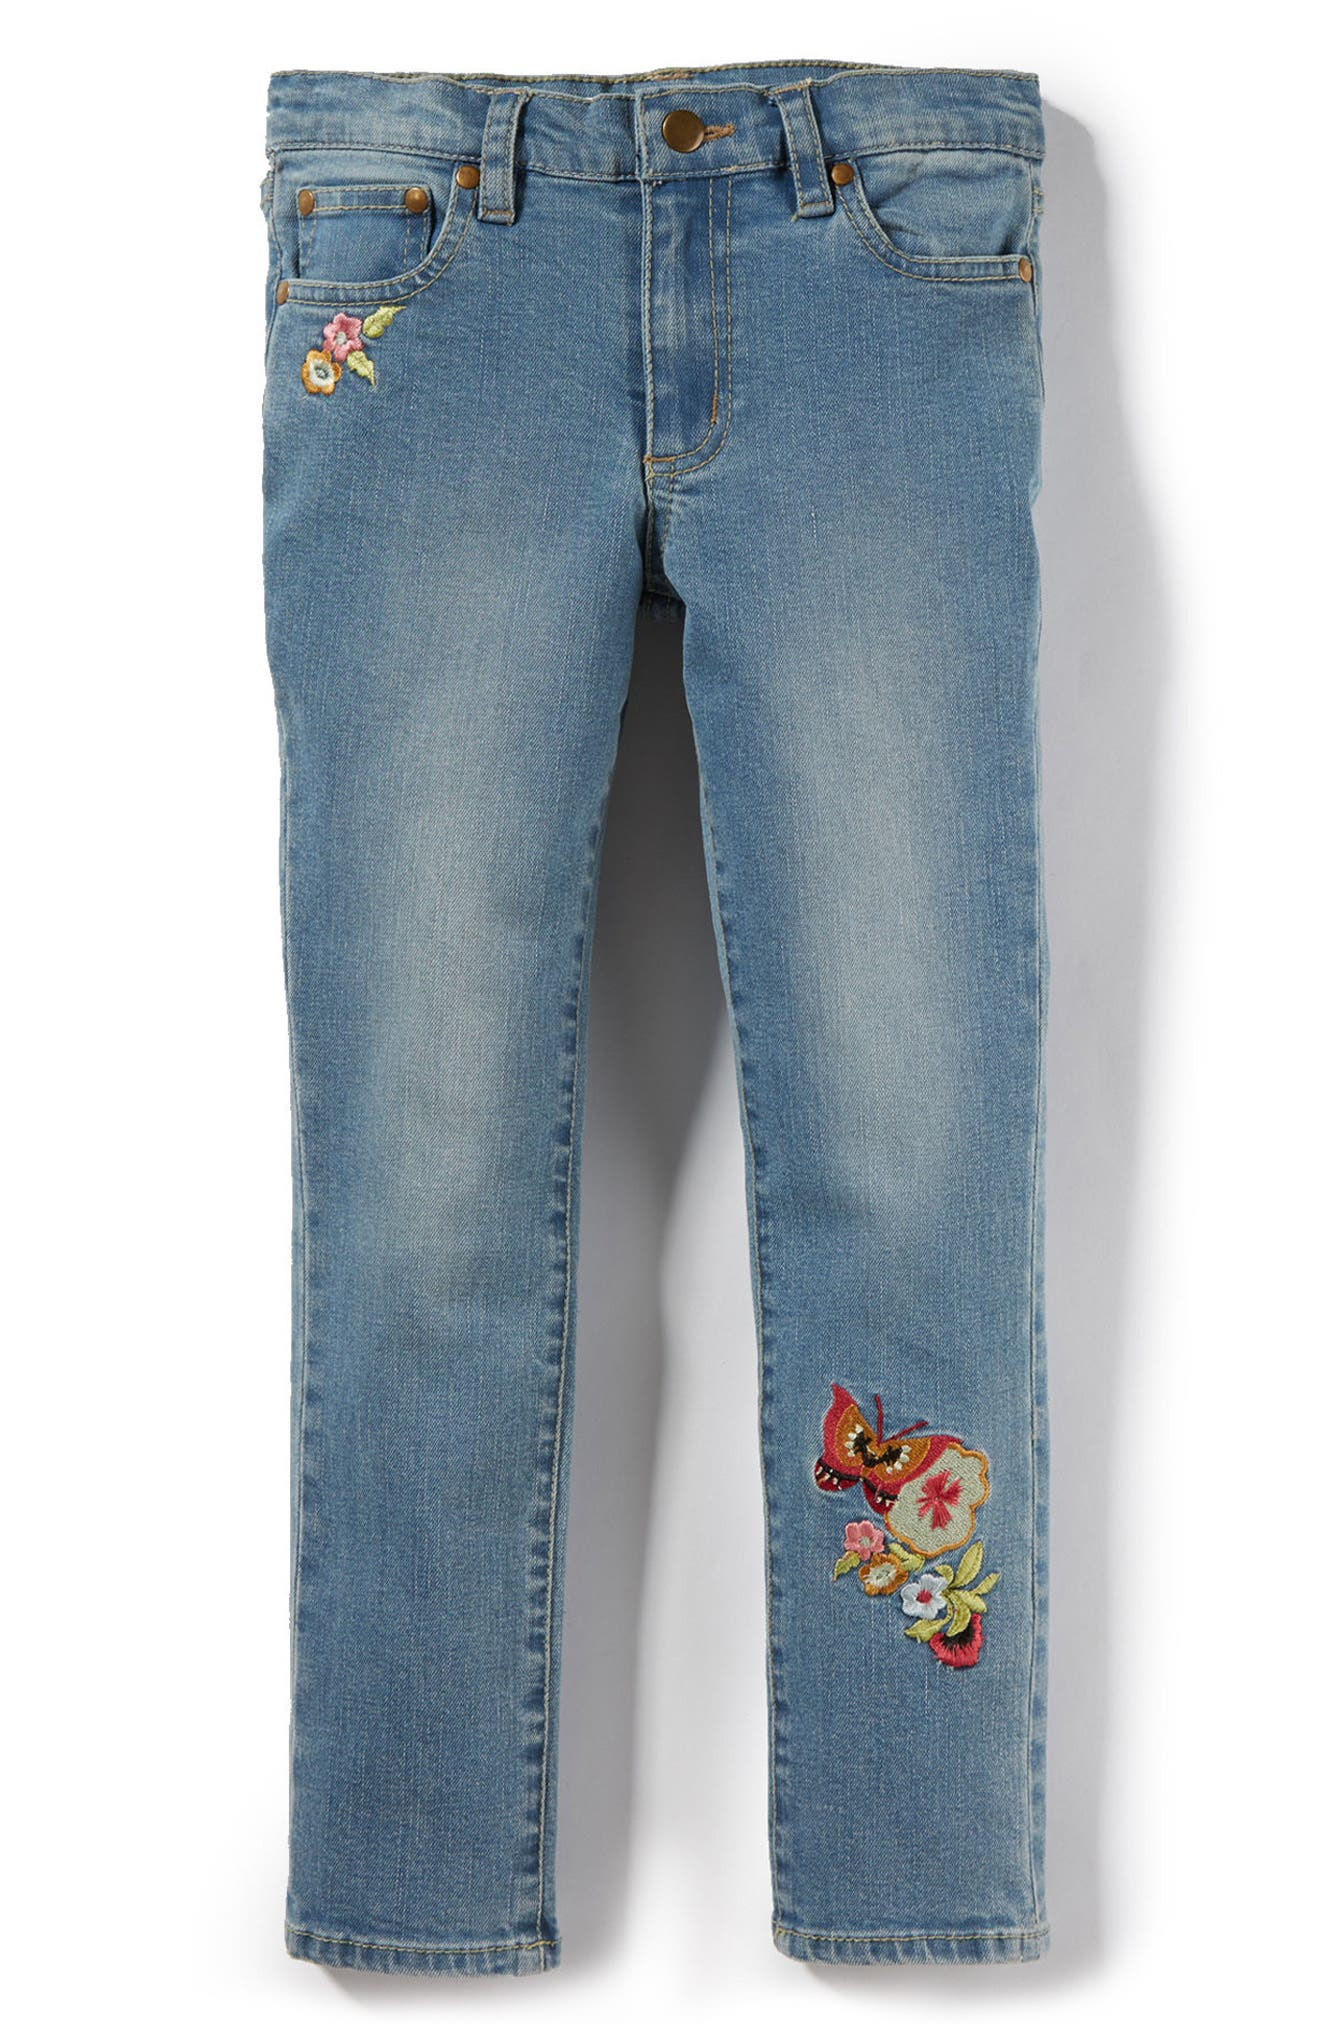 Main Image - Peek Taylor Embroidered Skinny Jeans (Toddler Girls, Little Girls & Big Girls)